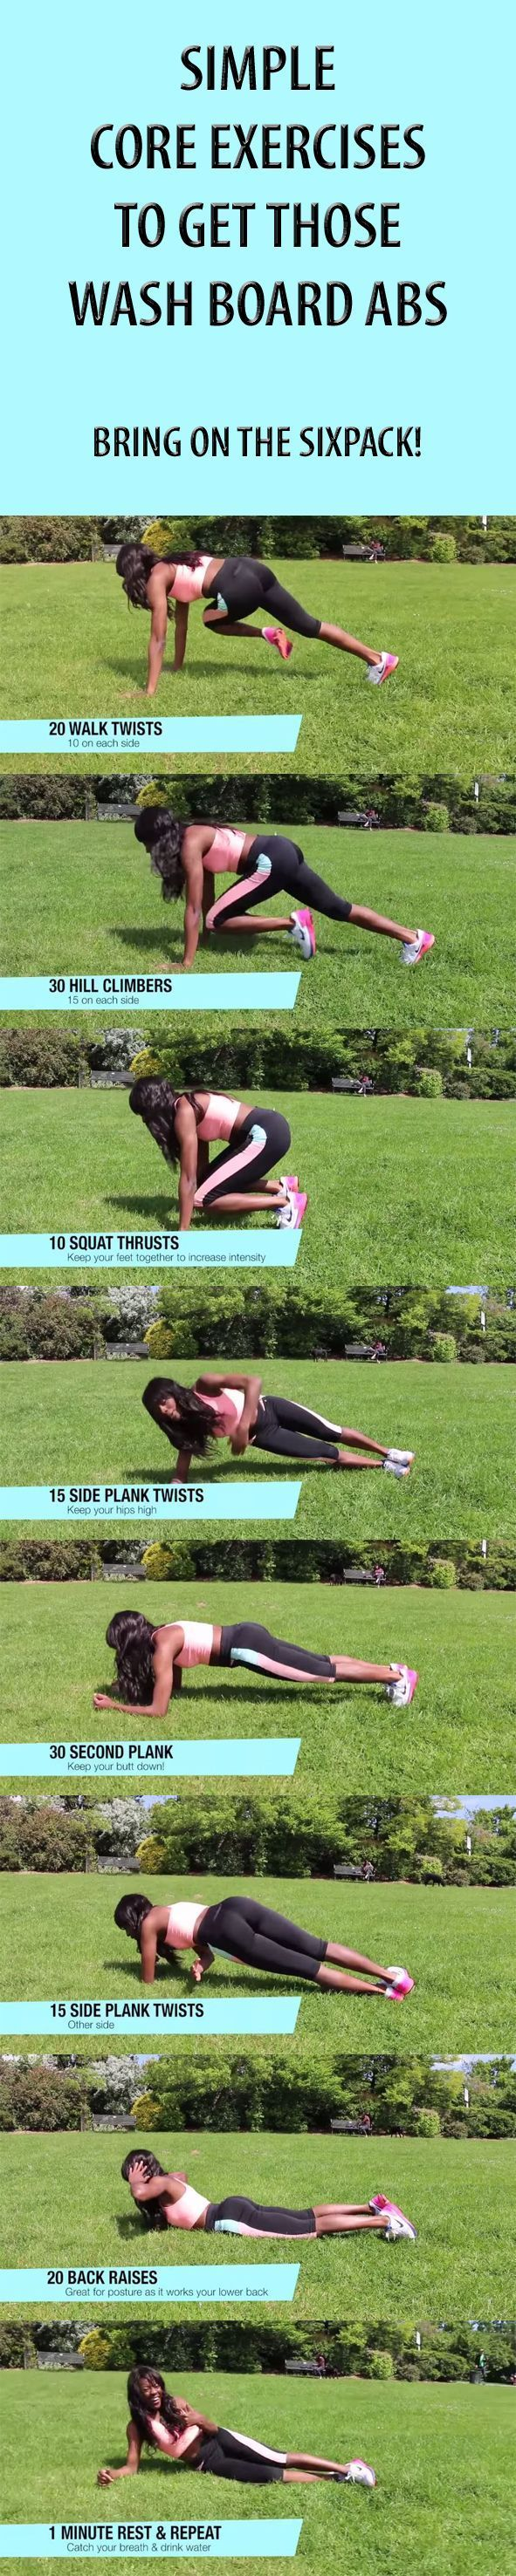 Abs don't happen over night but these moves will help sculpt them #FITGIRLCODE #abs #exercise